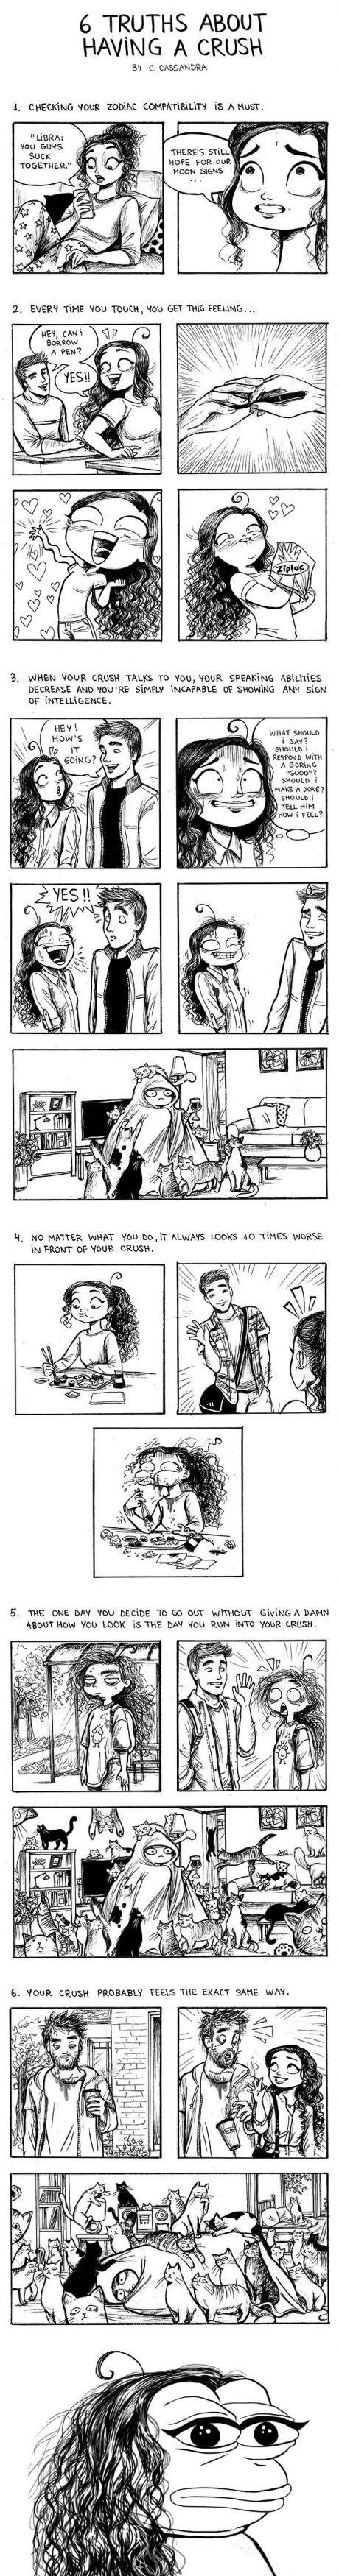 6 truths about having a crush (by C. Cassandra)